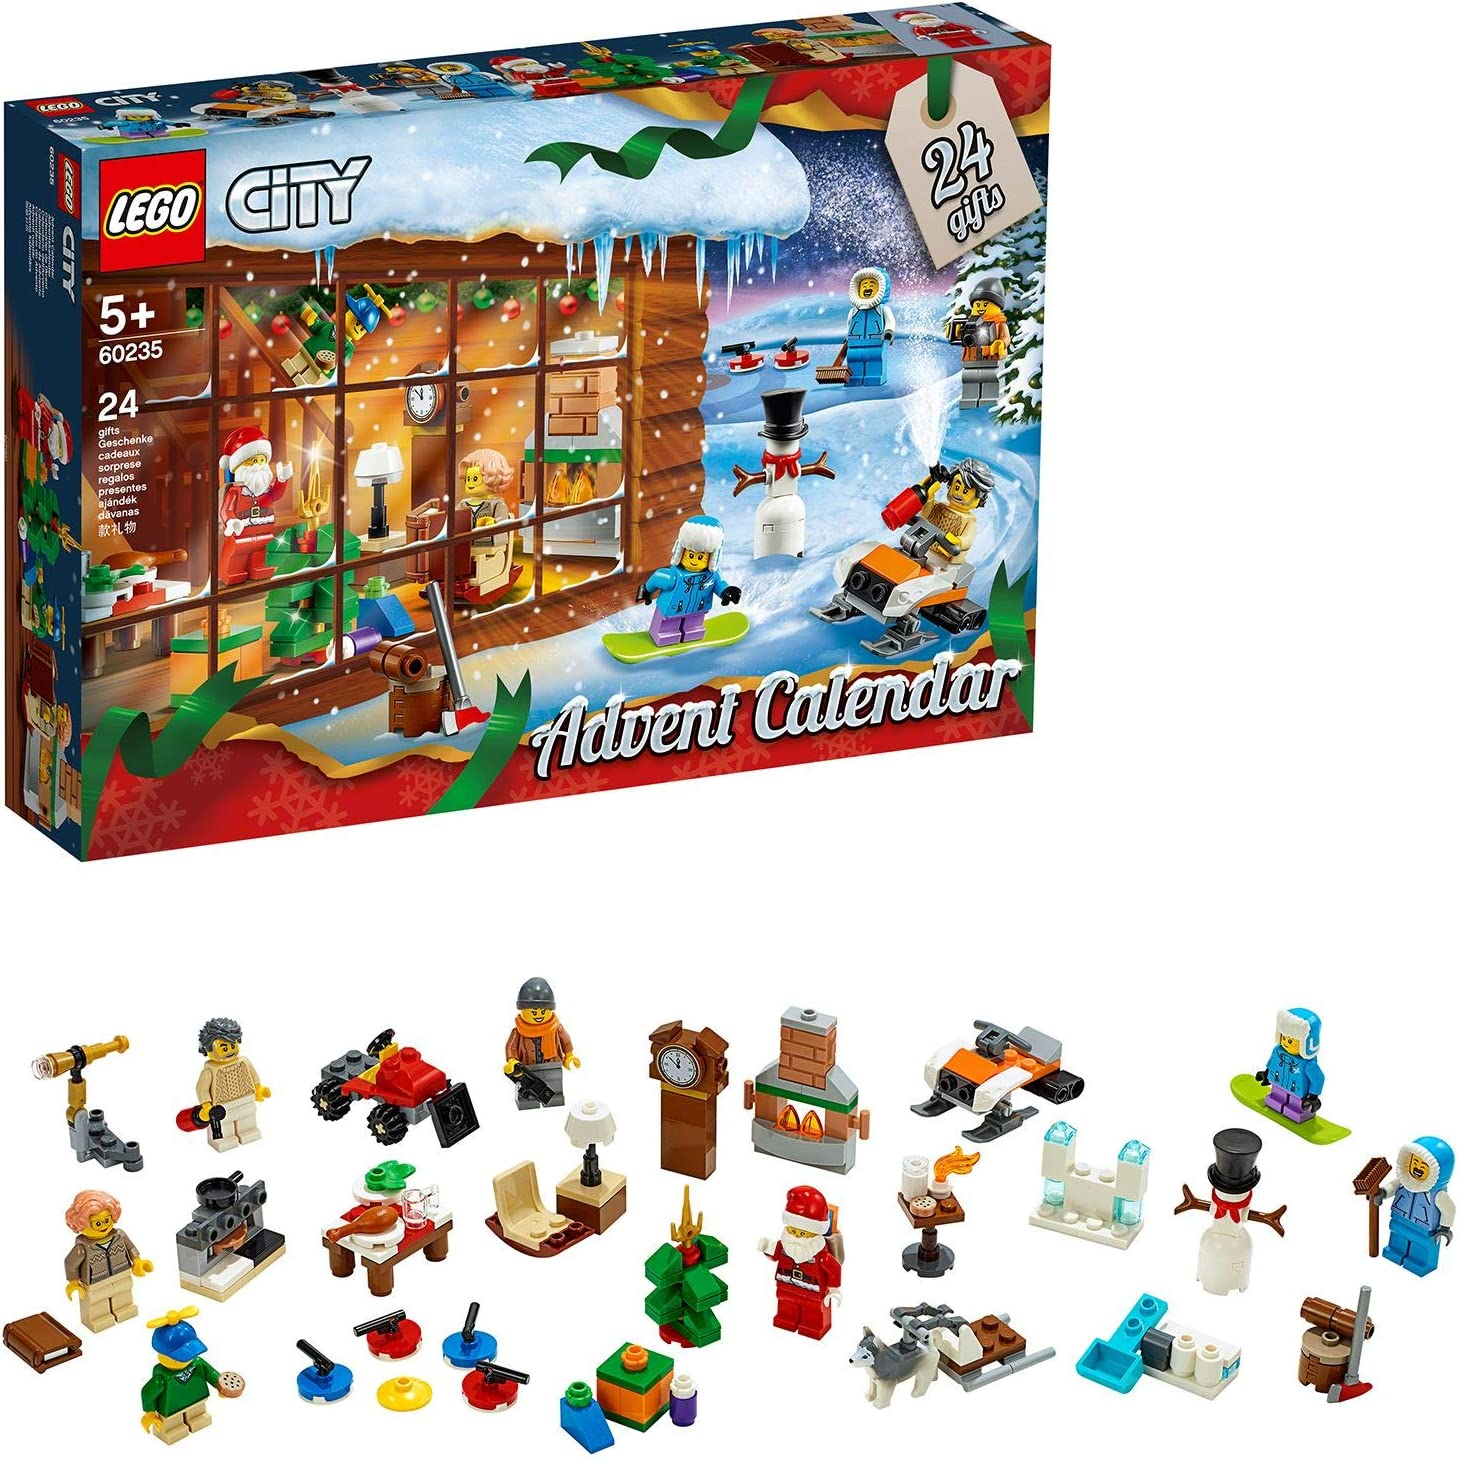 Amazon.com: LEGO 60235 City Advent Calendar: Toys & Games